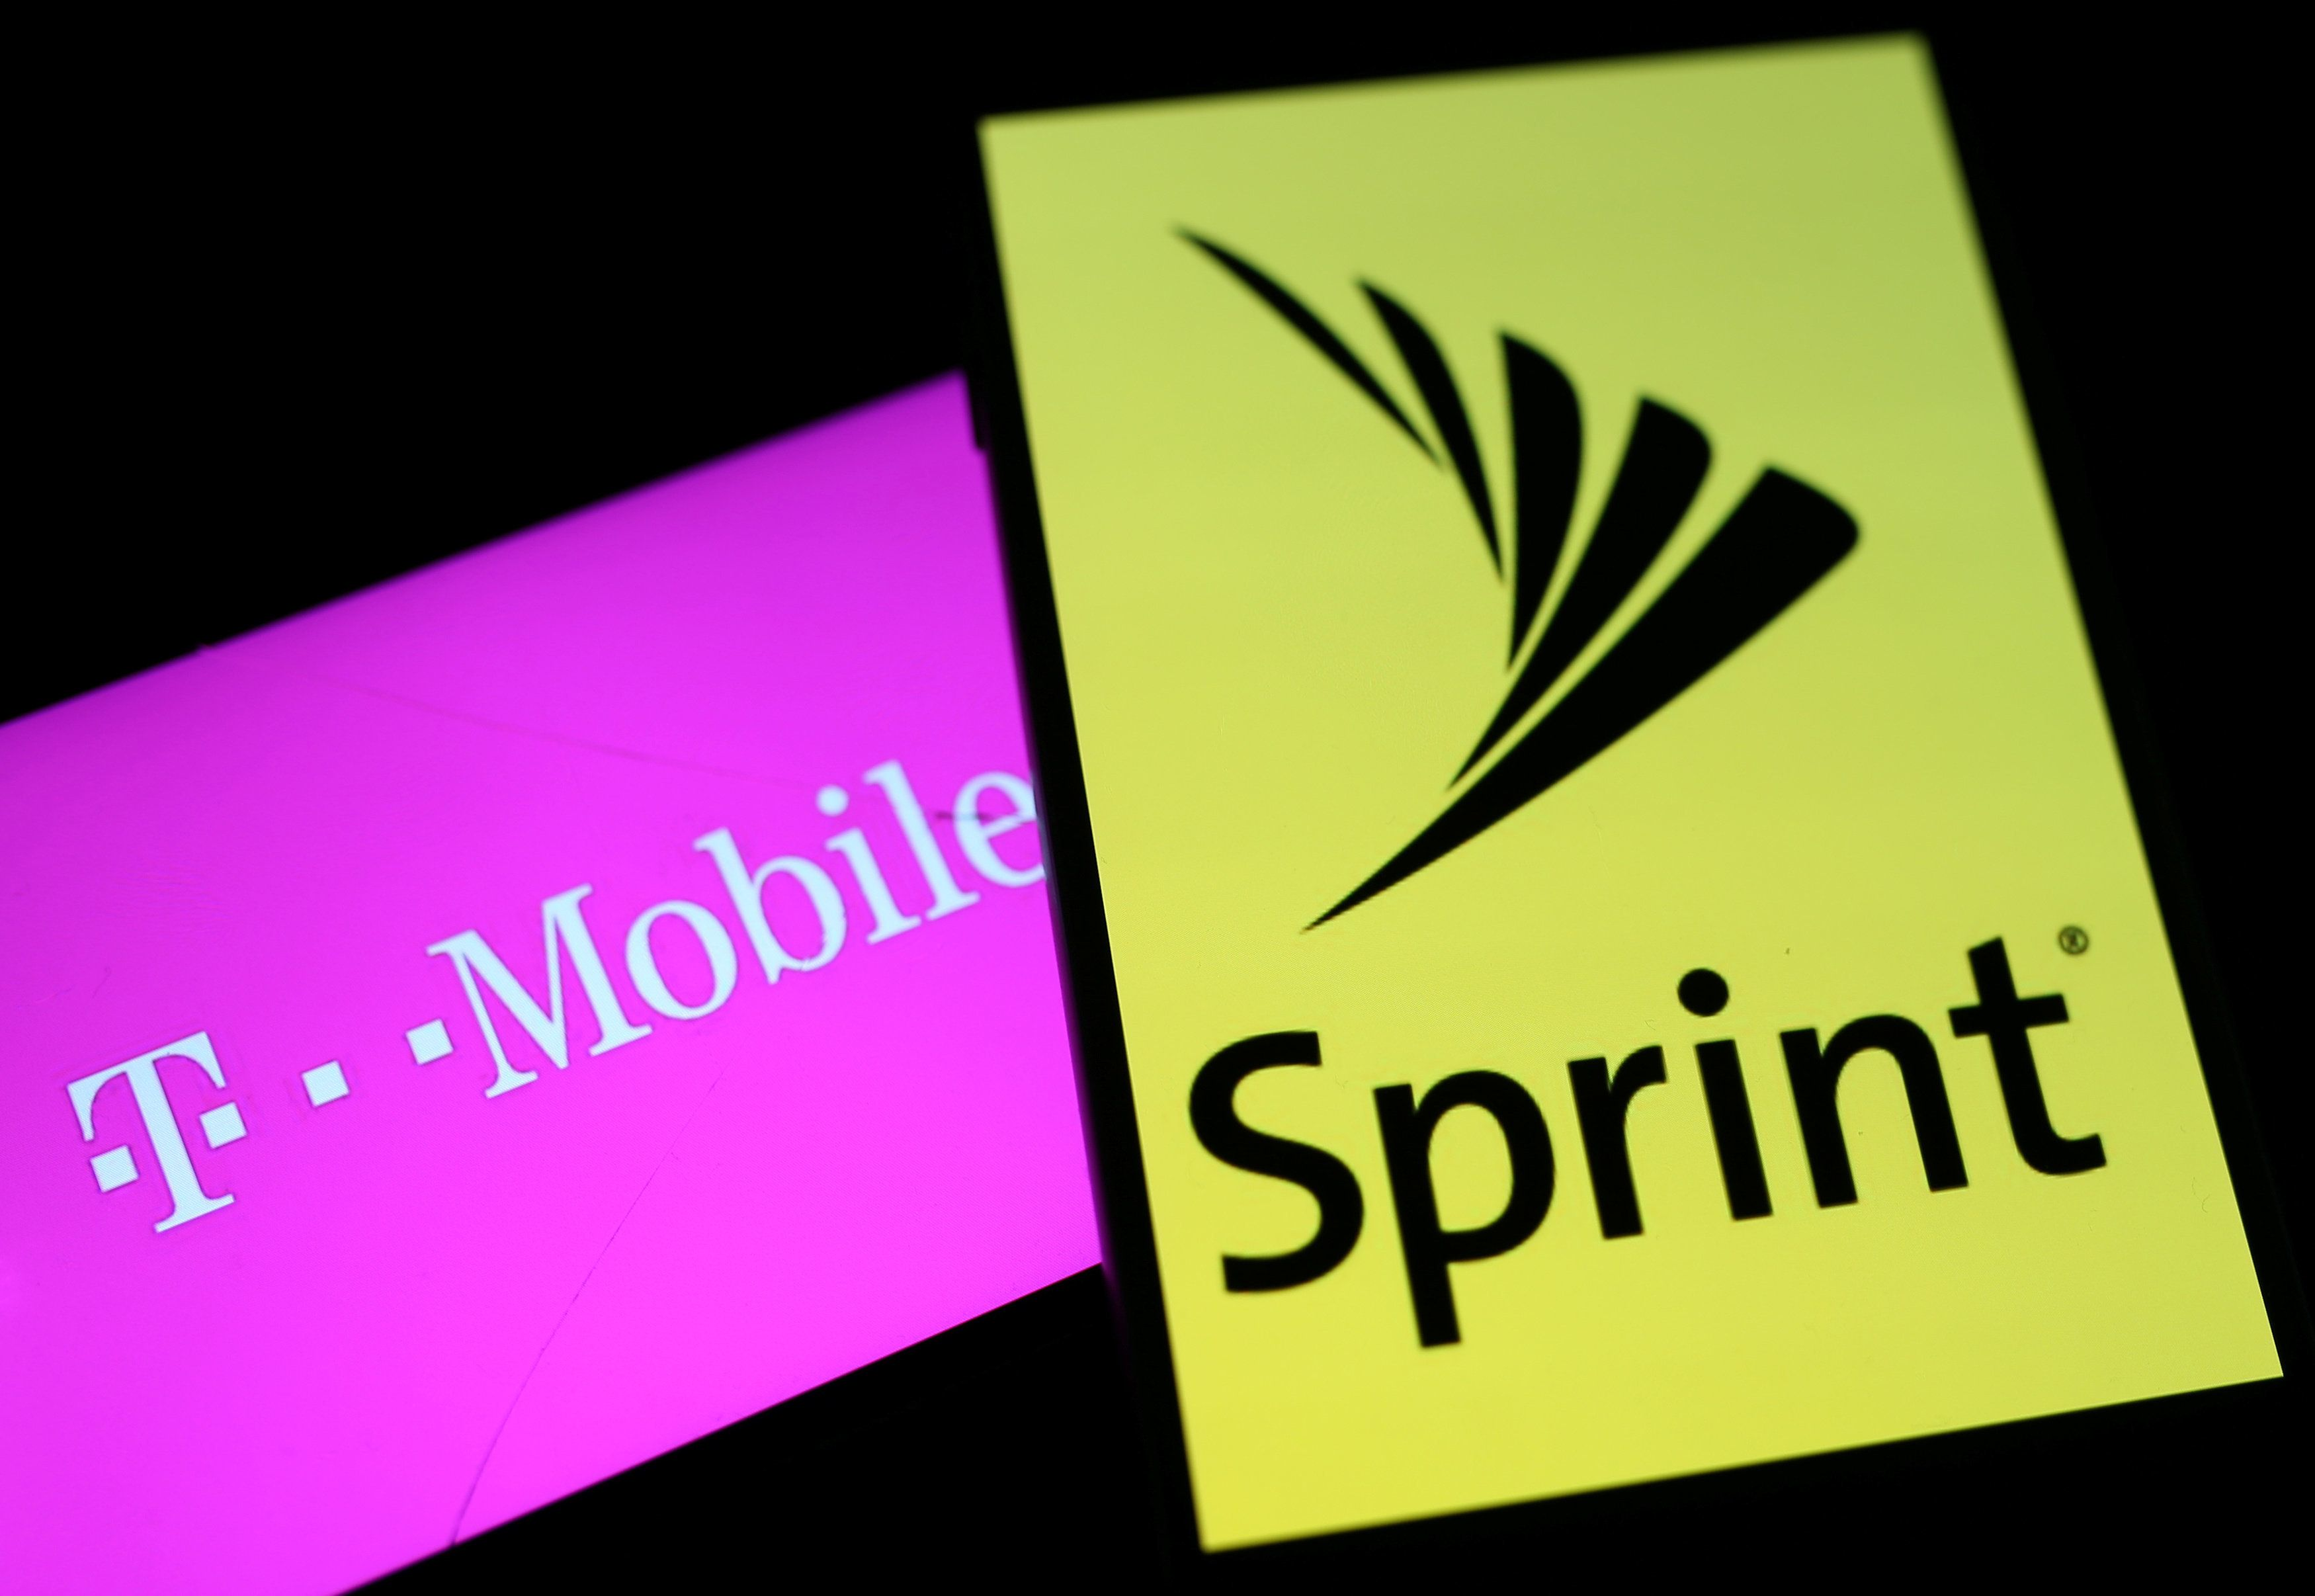 Smartphones with the logos of T-Mobile and Sprint are seen in this illustration taken September 19, 2017. (REUTERS/Dado Ruvic